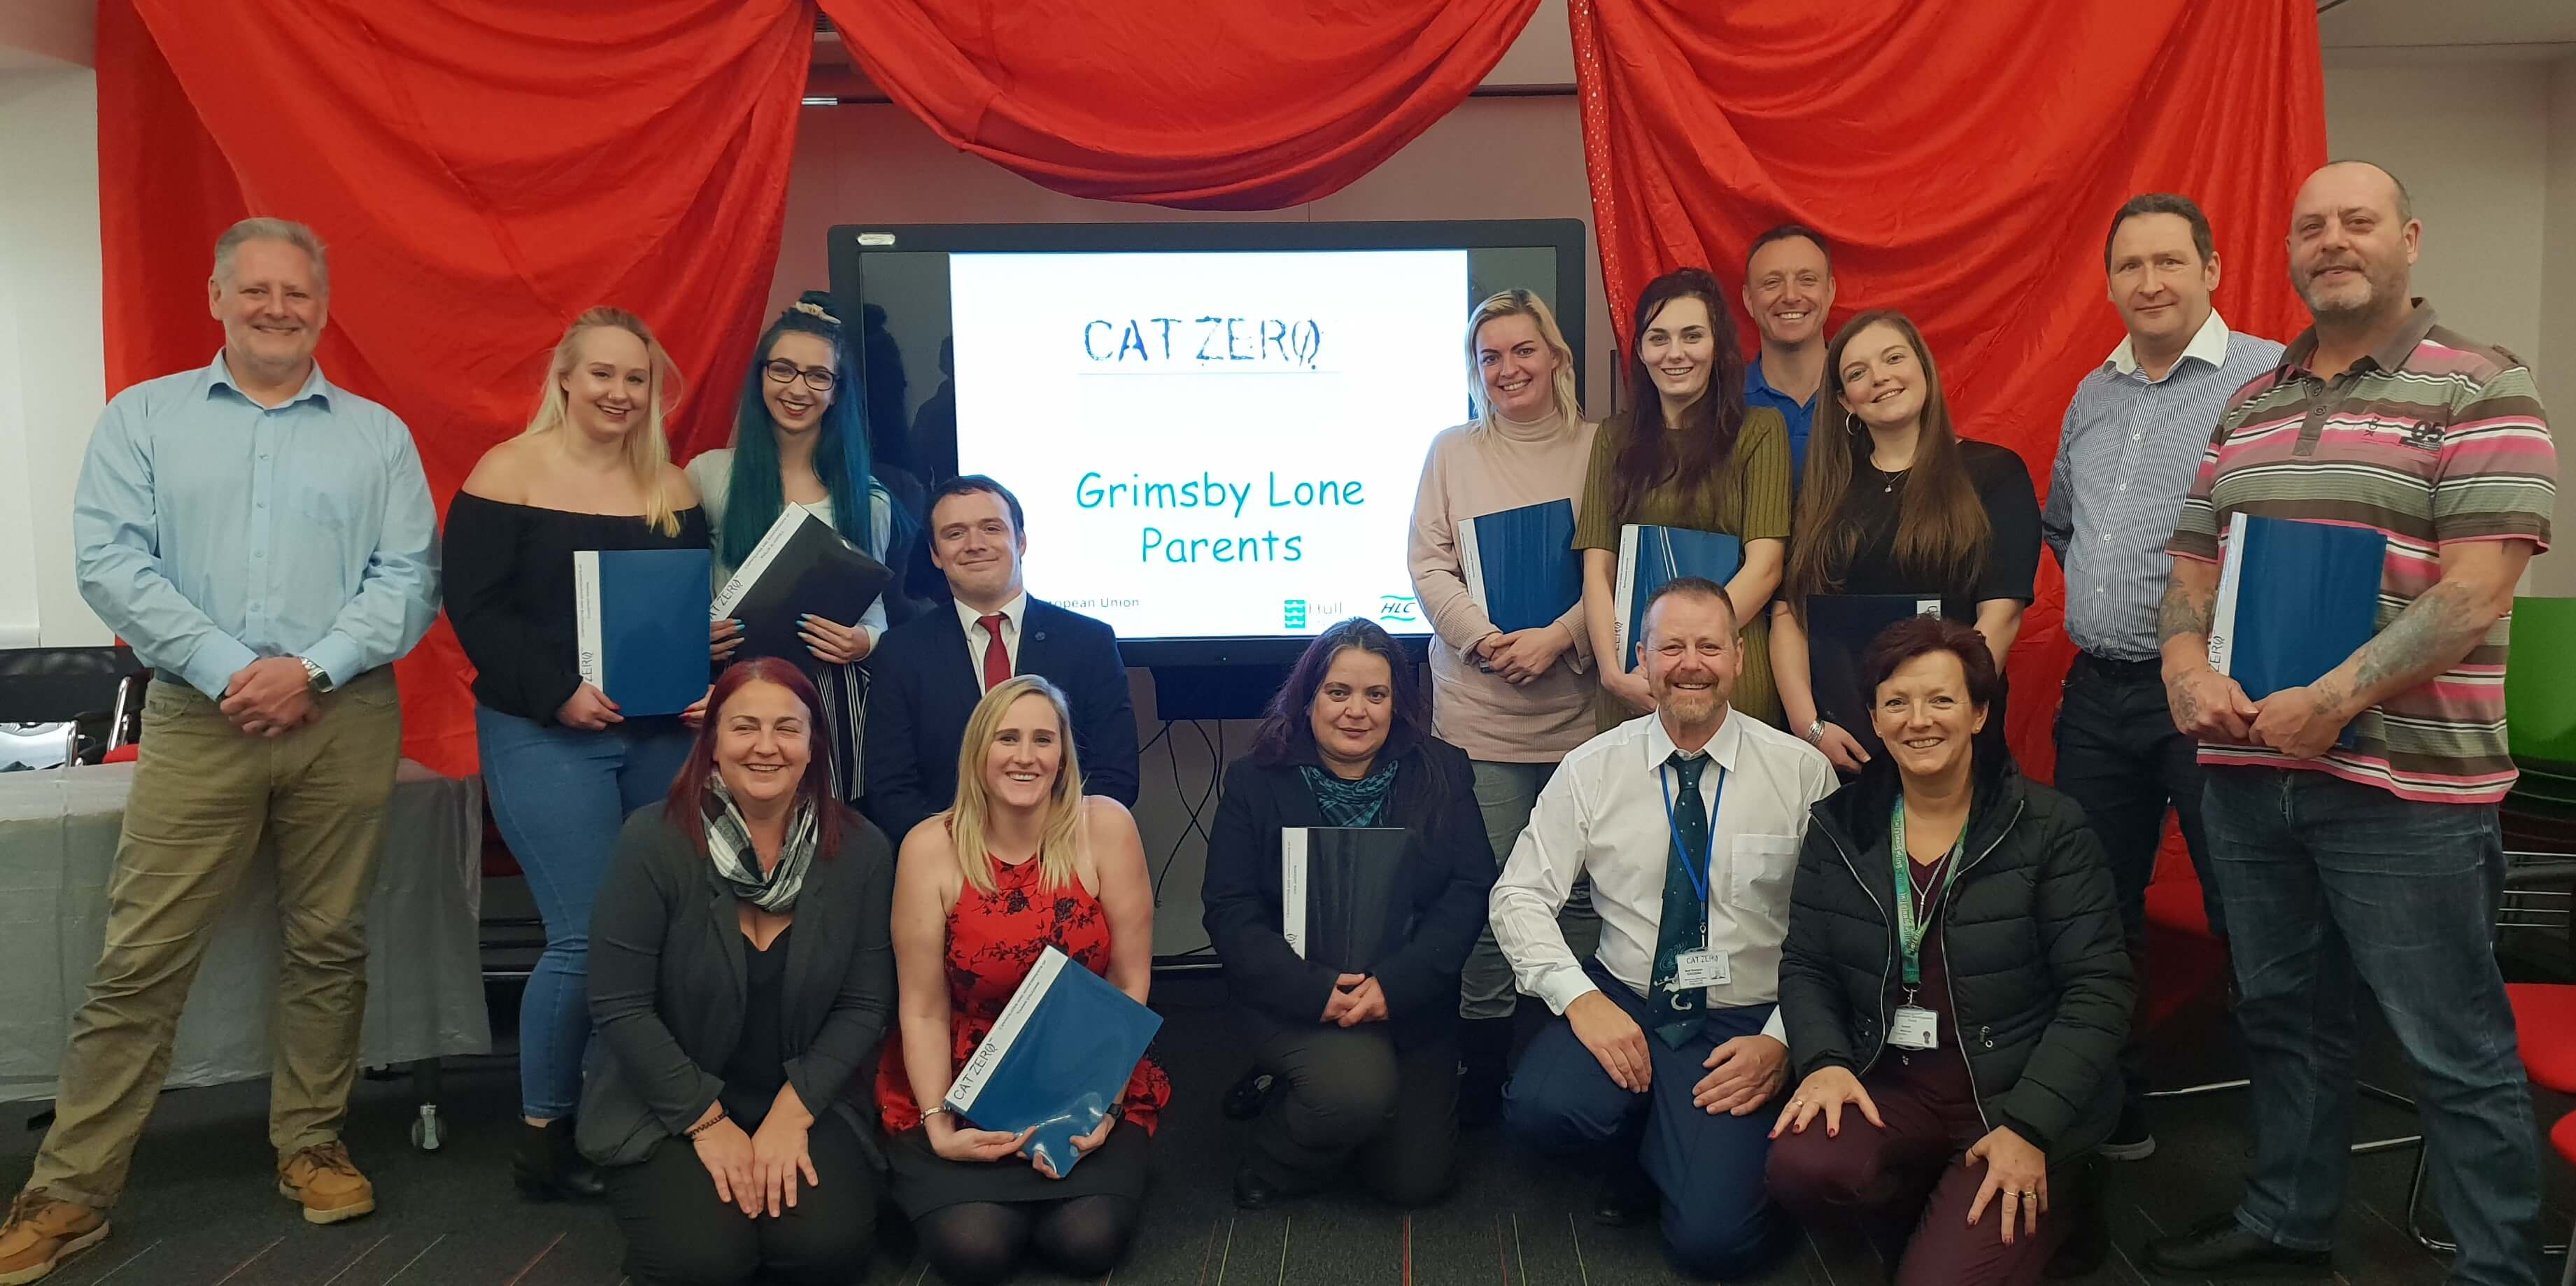 Grimsby lone parents group 2019